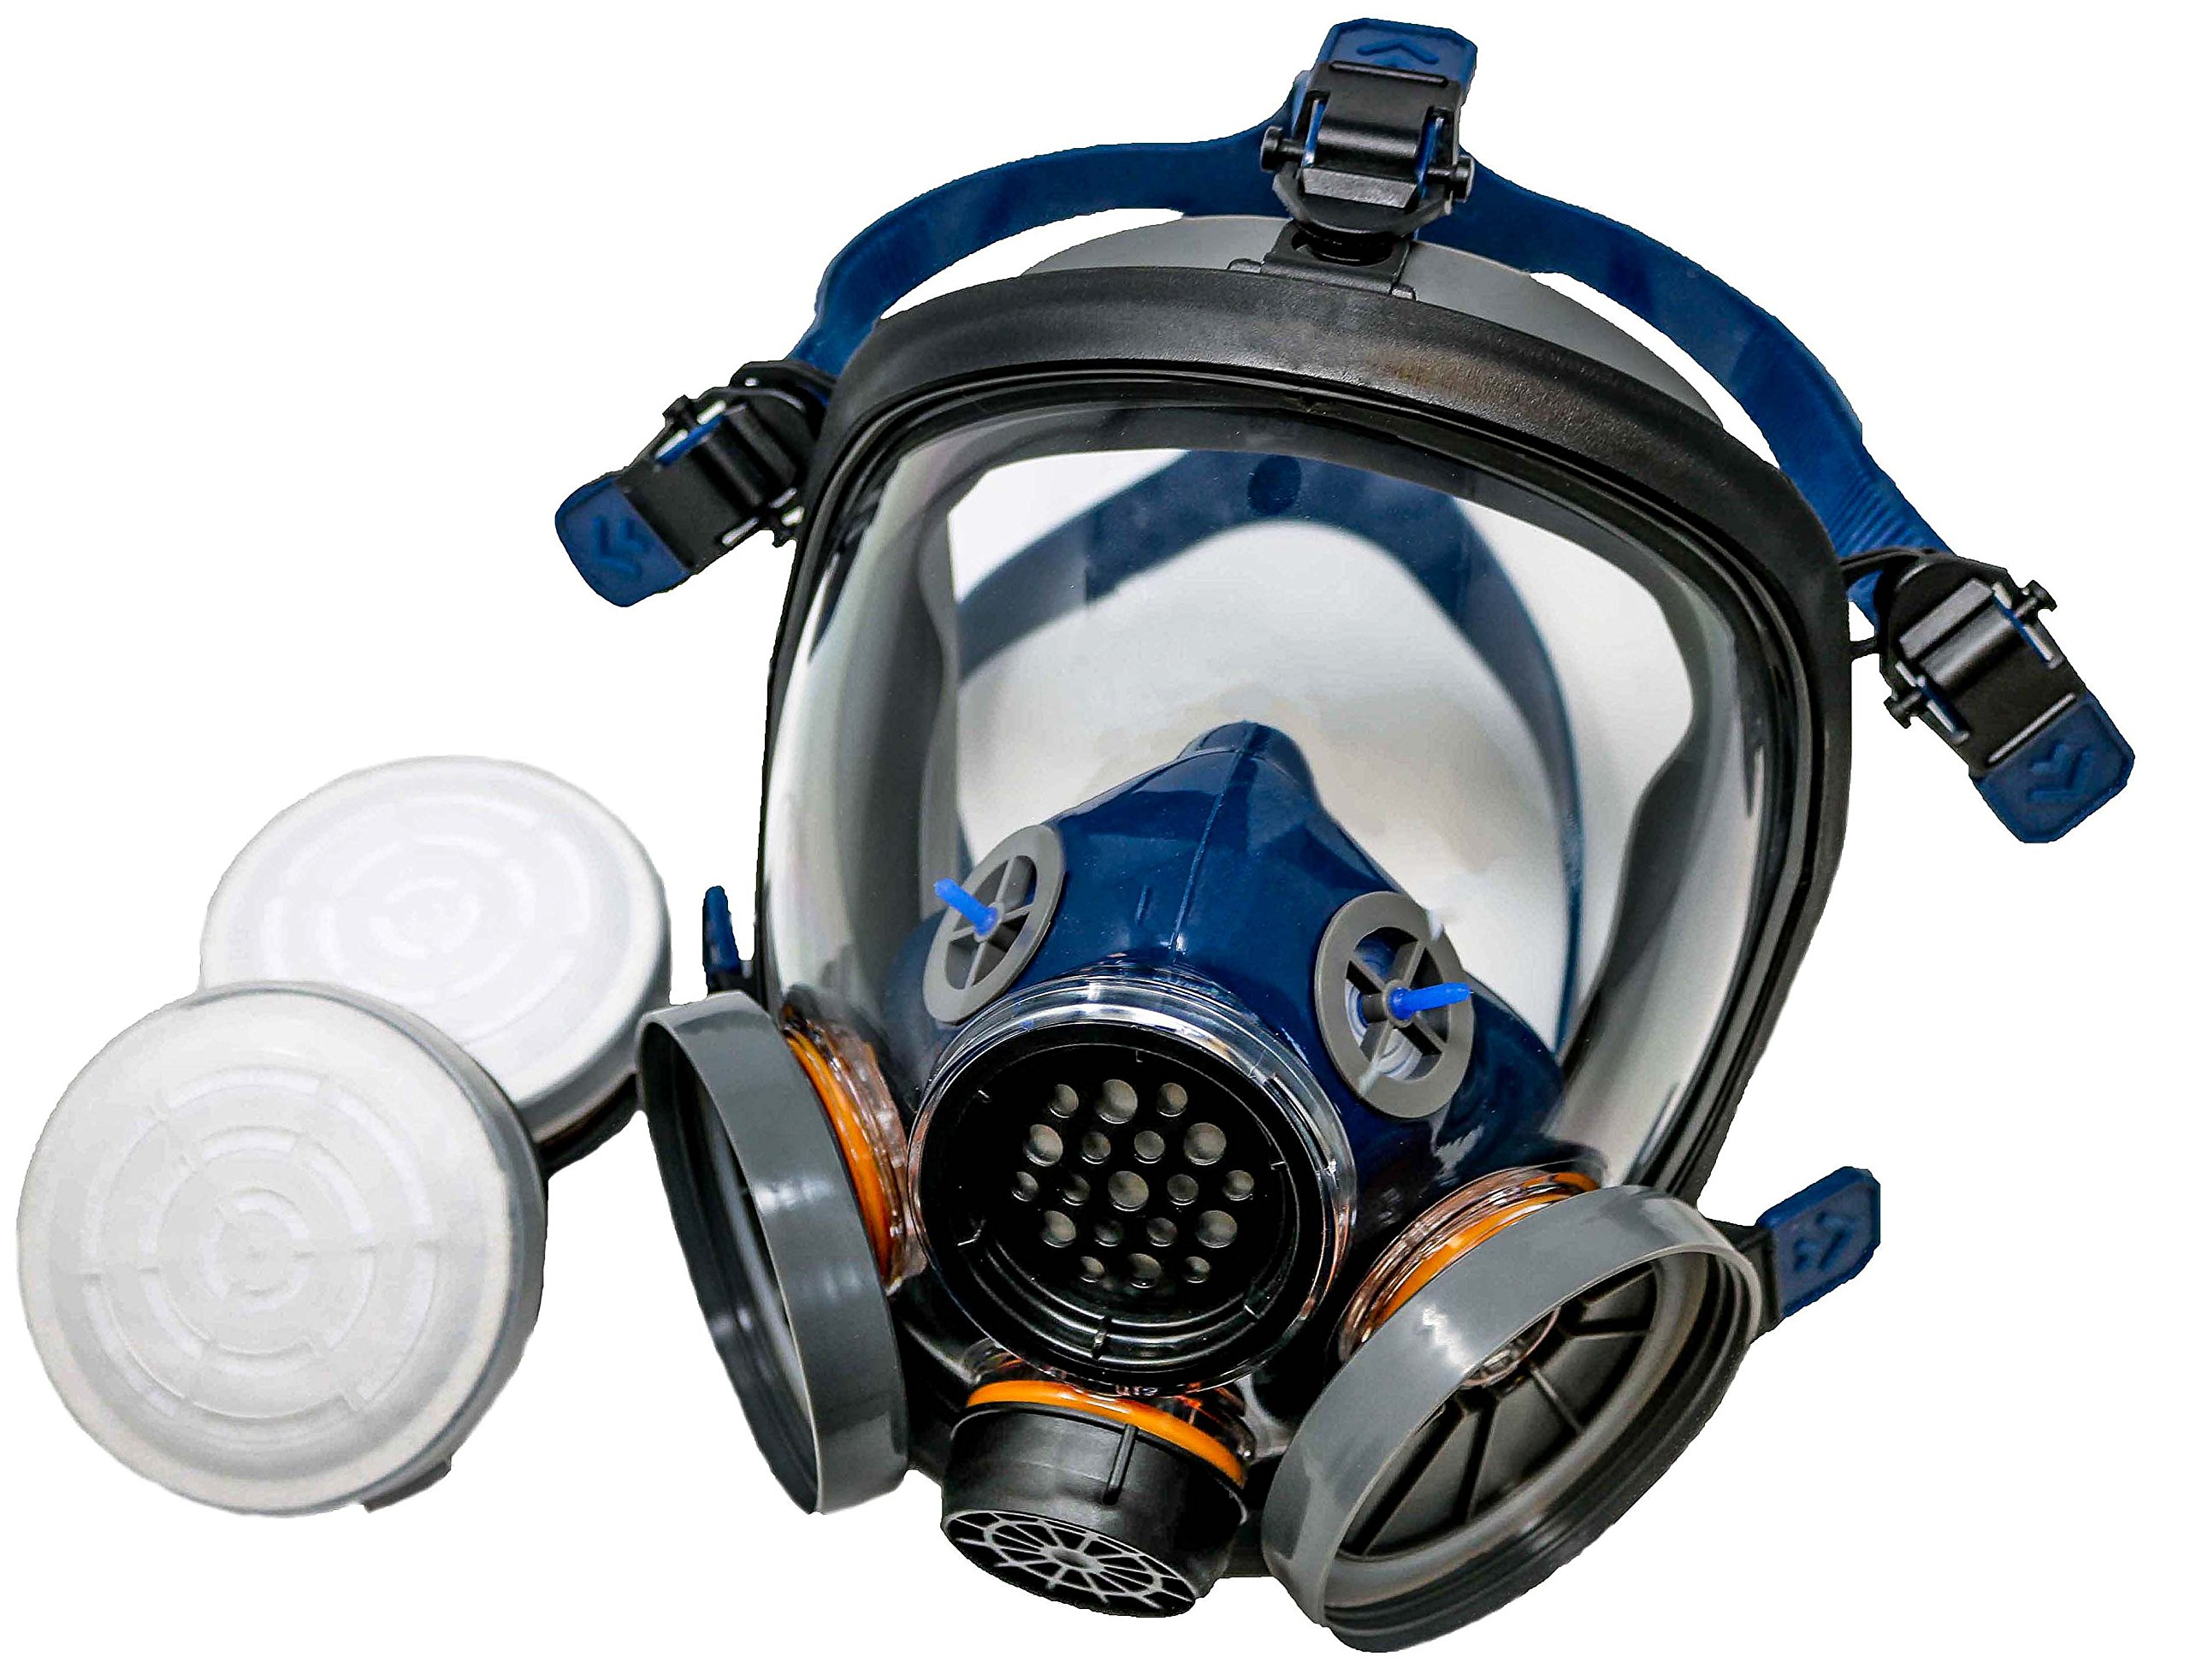 PD-100 Full Face Respirator by Parcil Distribution. 1 Year Factory Guarantee. Double Air Filter, Eye Protection, Gas Mask - Industrial Grade Quality by Parcil Distribution (Image #3)